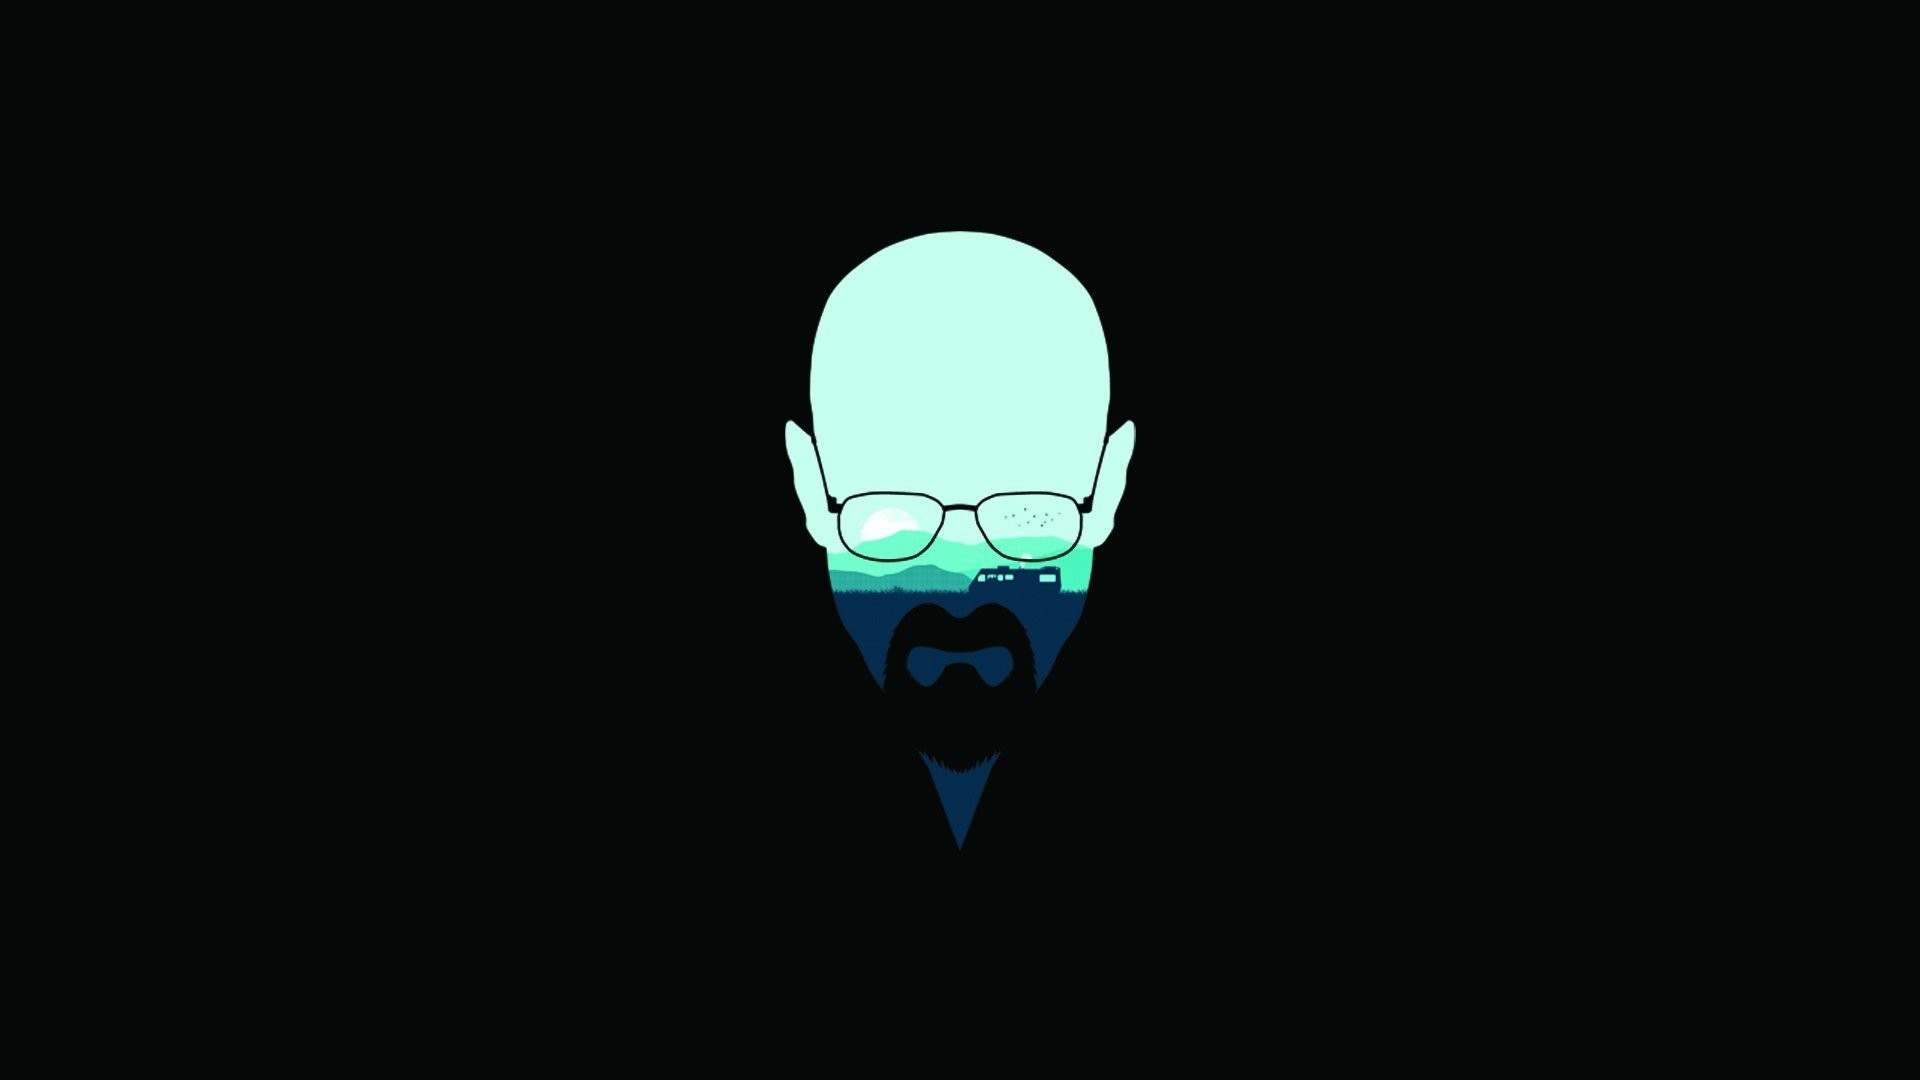 1920x1080 Walter White - Breaking Bad Wallpaper 770255 ...